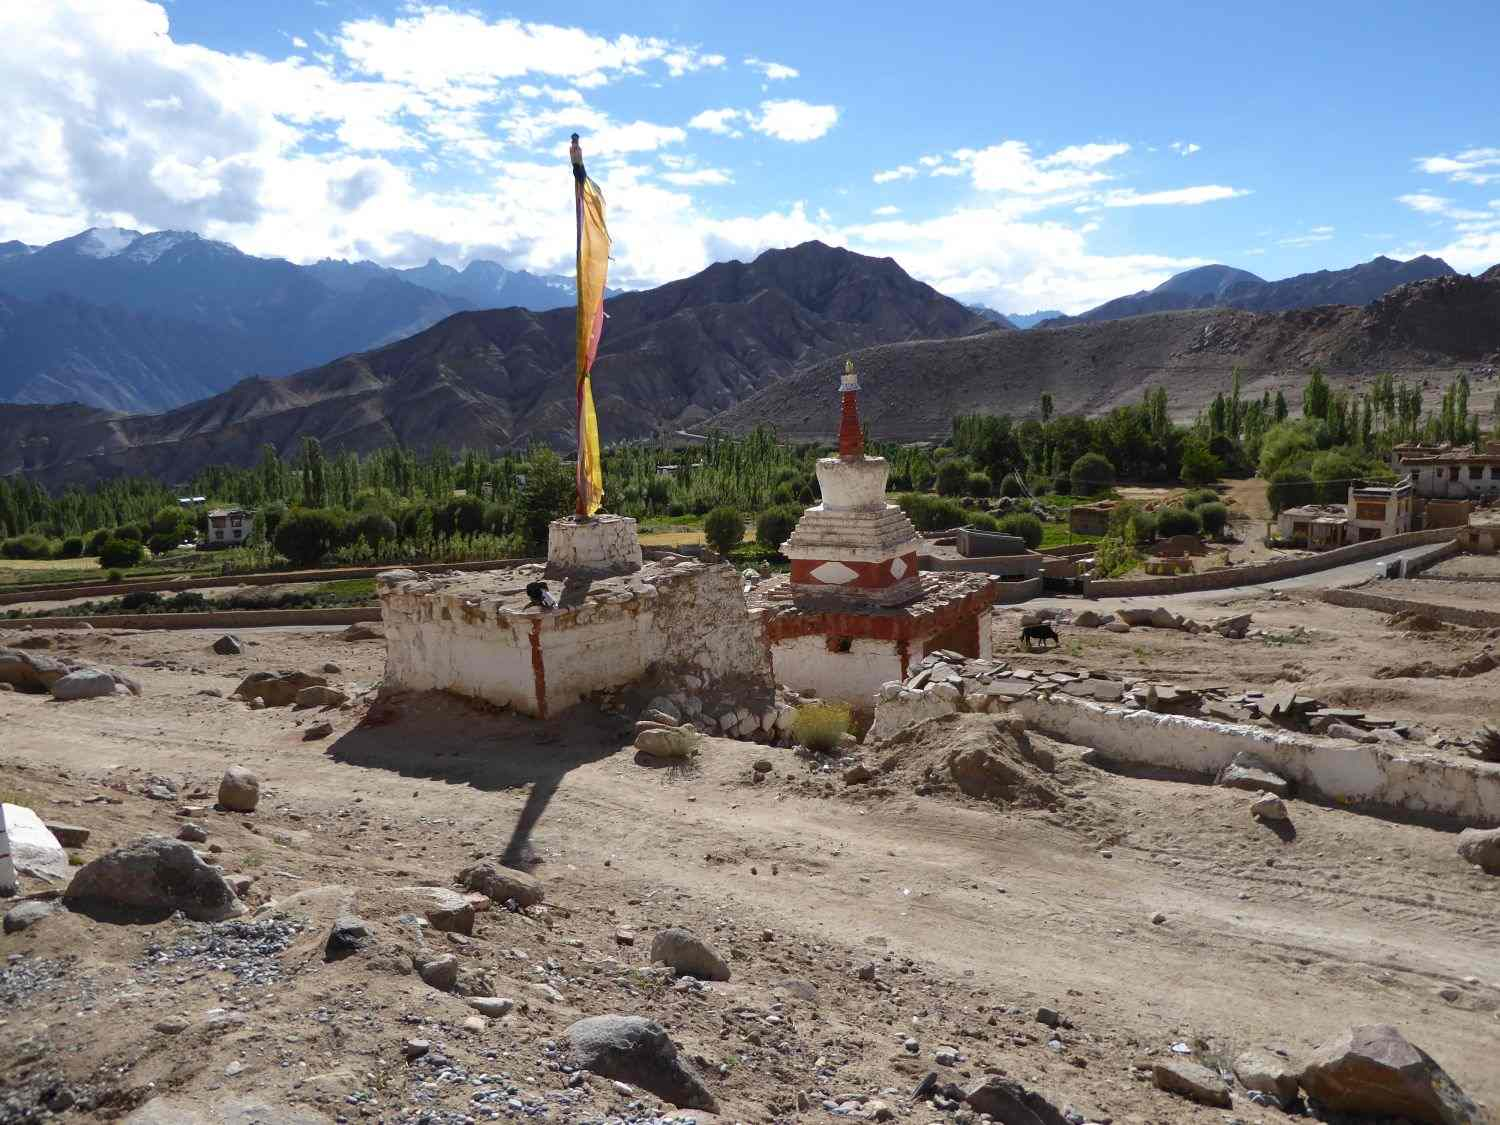 Stupas on the road to Likir